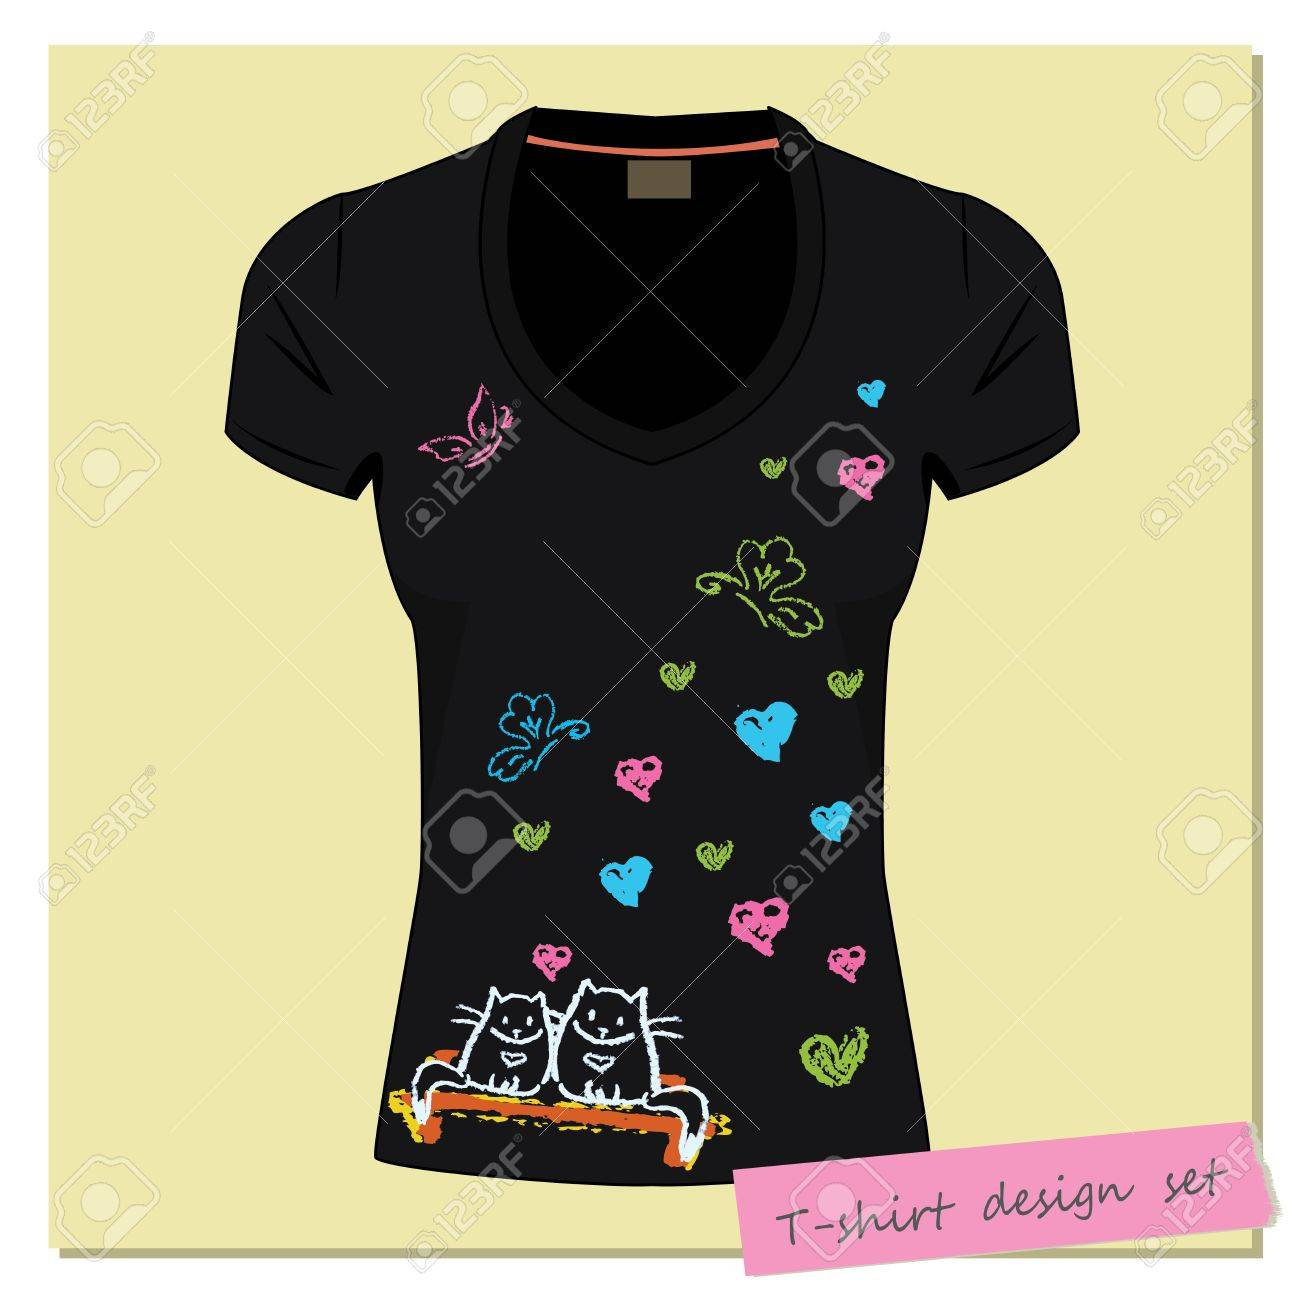 Design t shirt hand made - Black Women S T Shirts With The Label Print Design Different Handmade Pastel Chalk